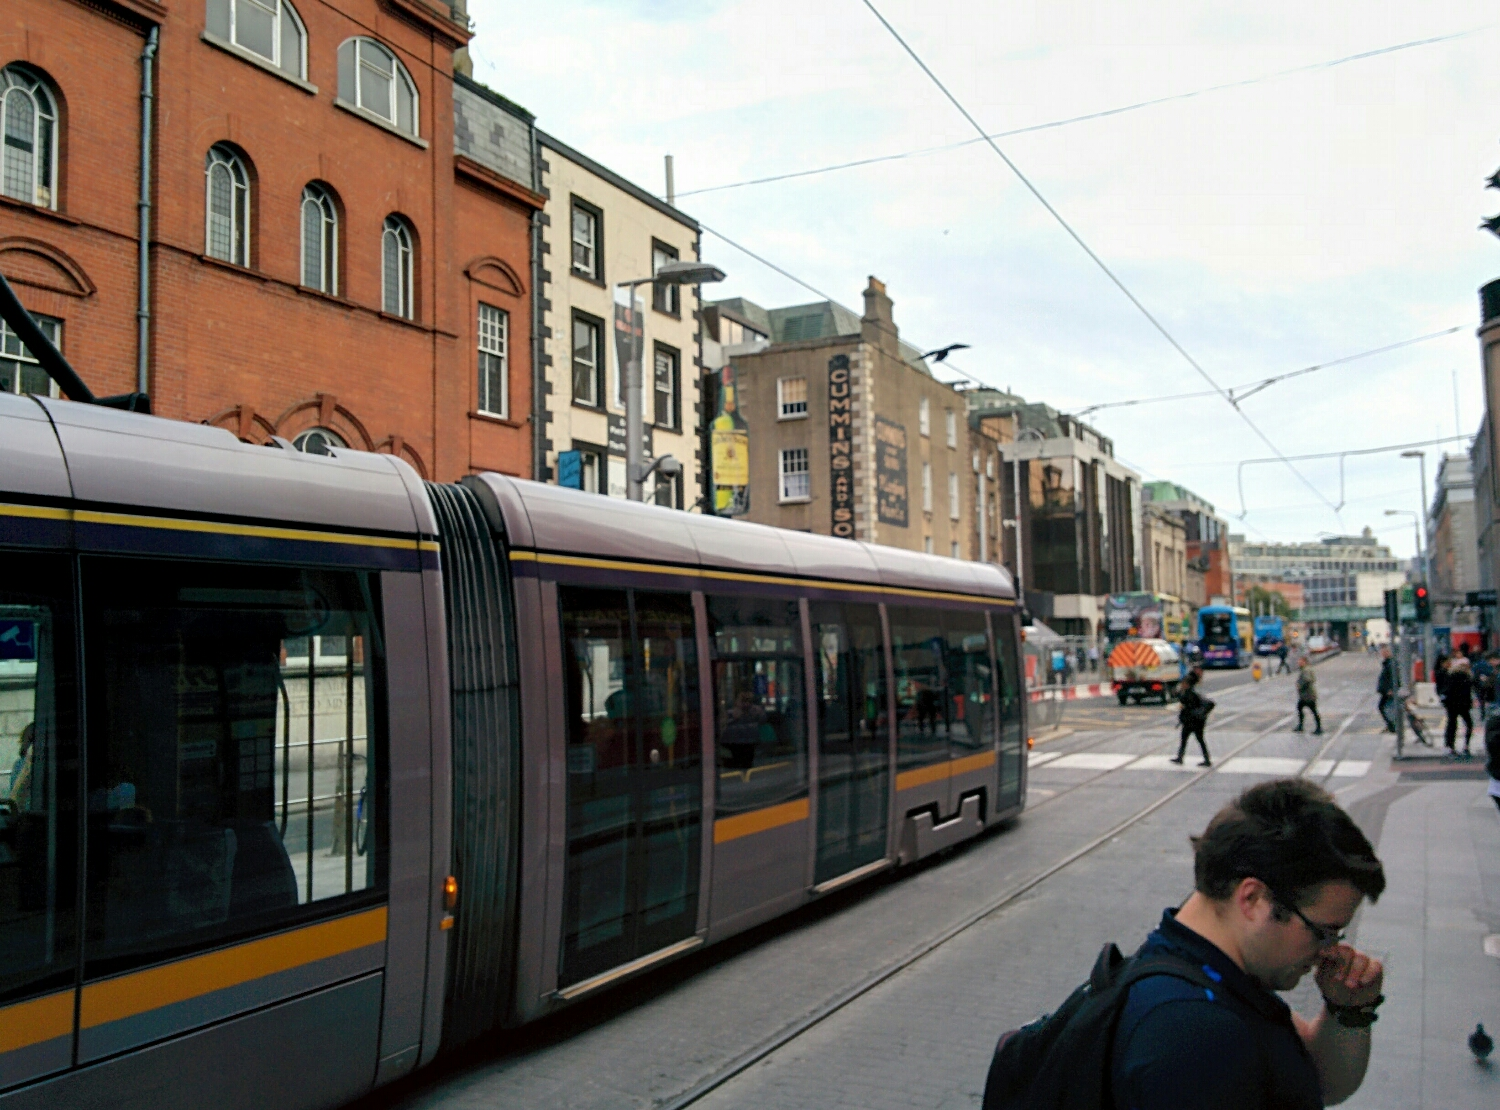 The tram in the city centre. The line is also used by emergency services and cyclists although I'm not sure its official as it makes for some awkward cycling.